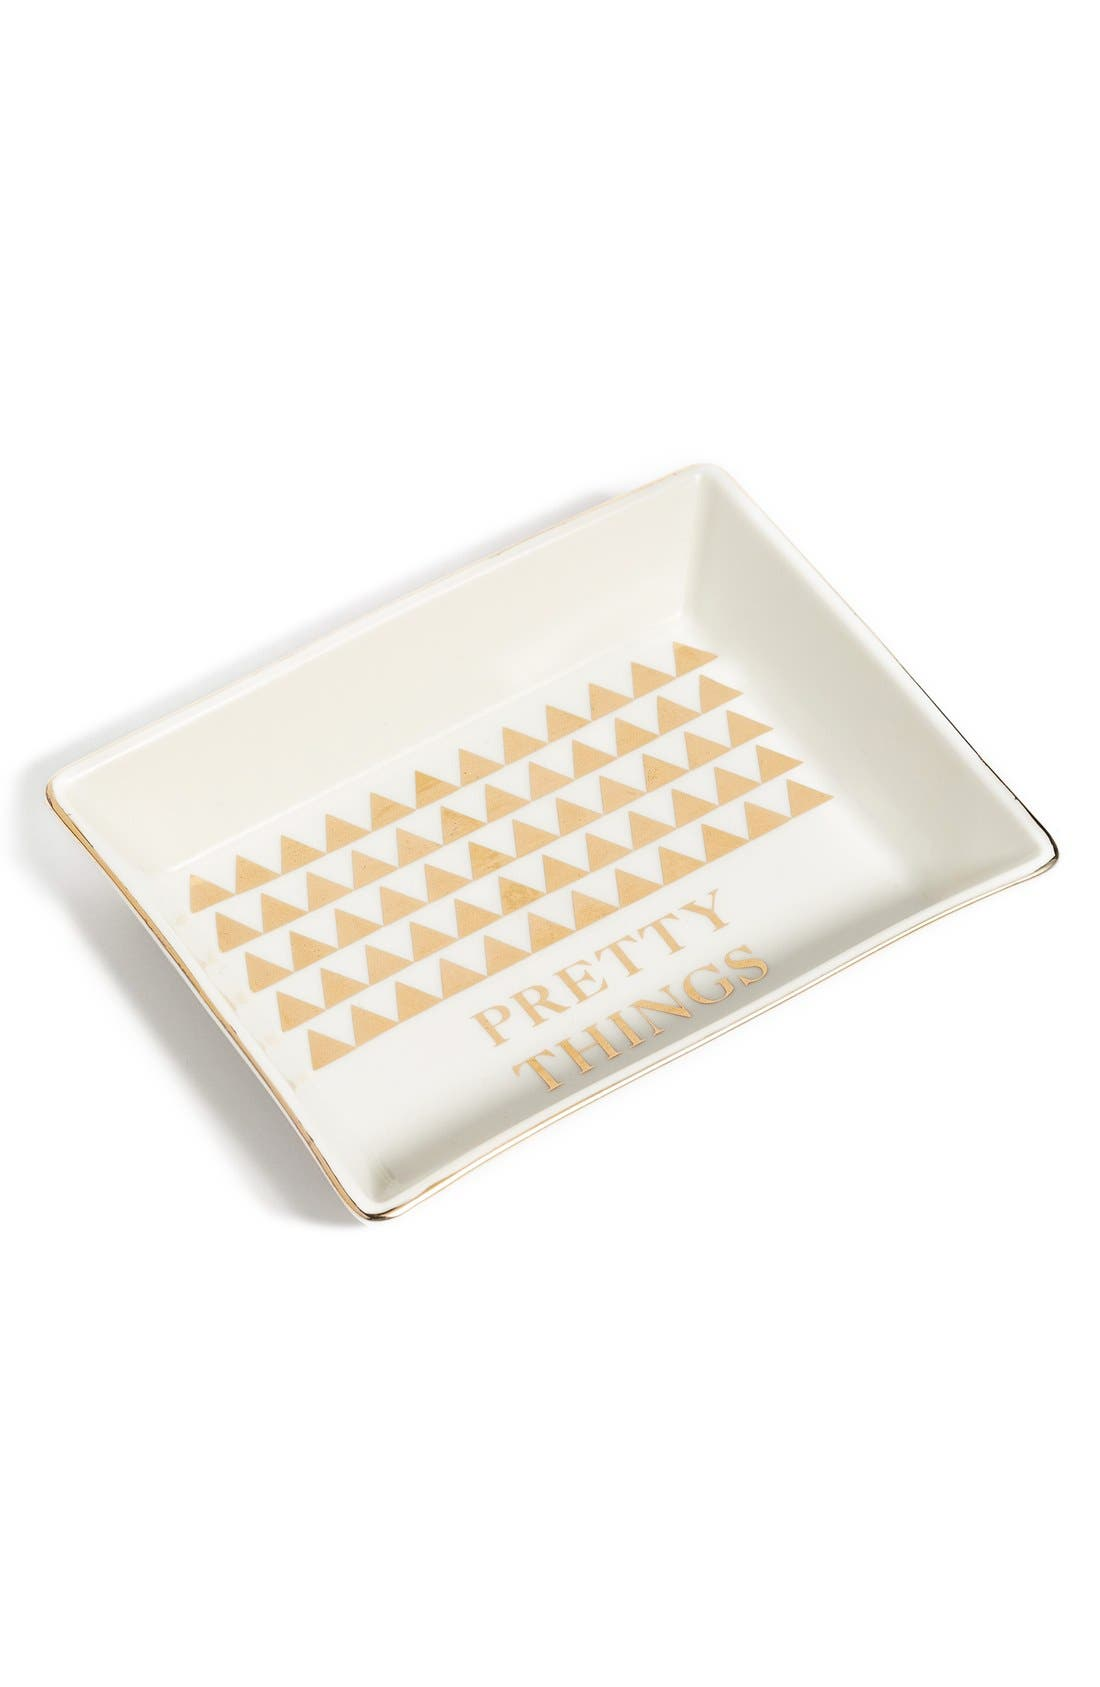 Alternate Image 1 Selected - OK originals Pretty Things Jewelry Dish